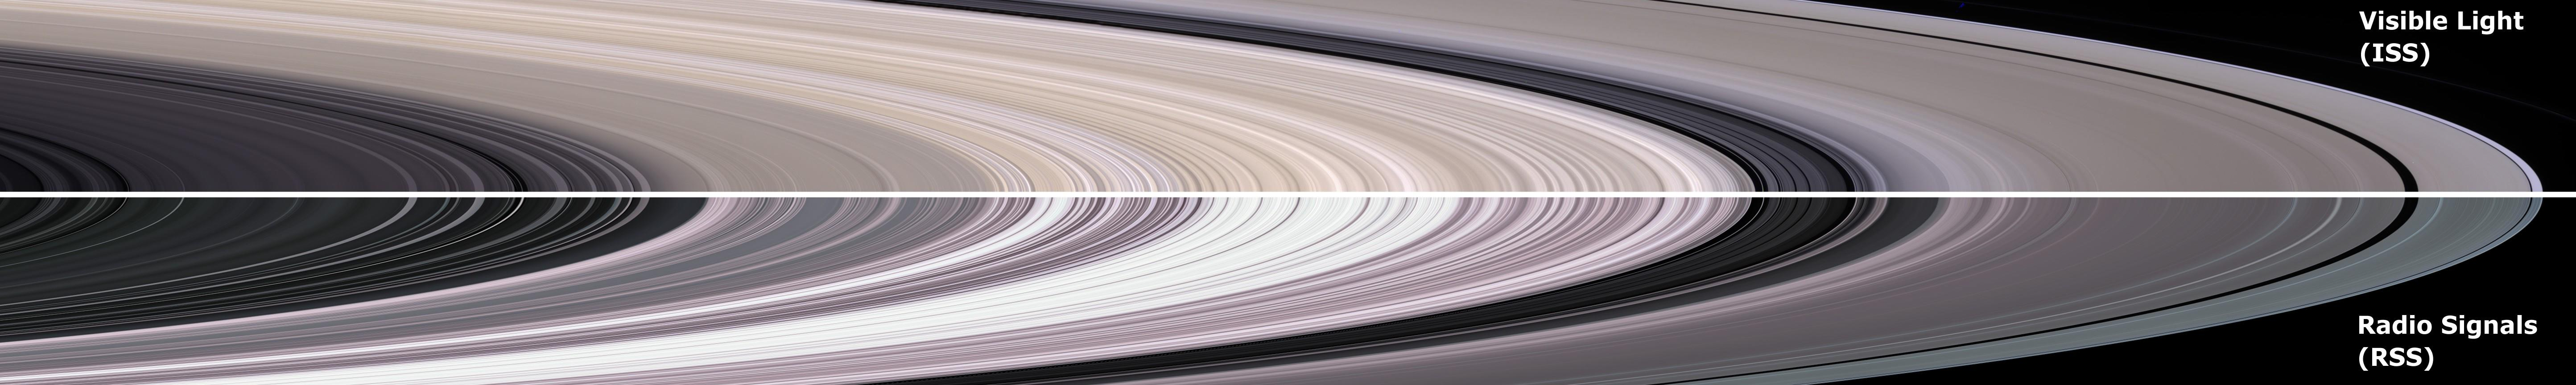 The image compares structure of Saturns rings